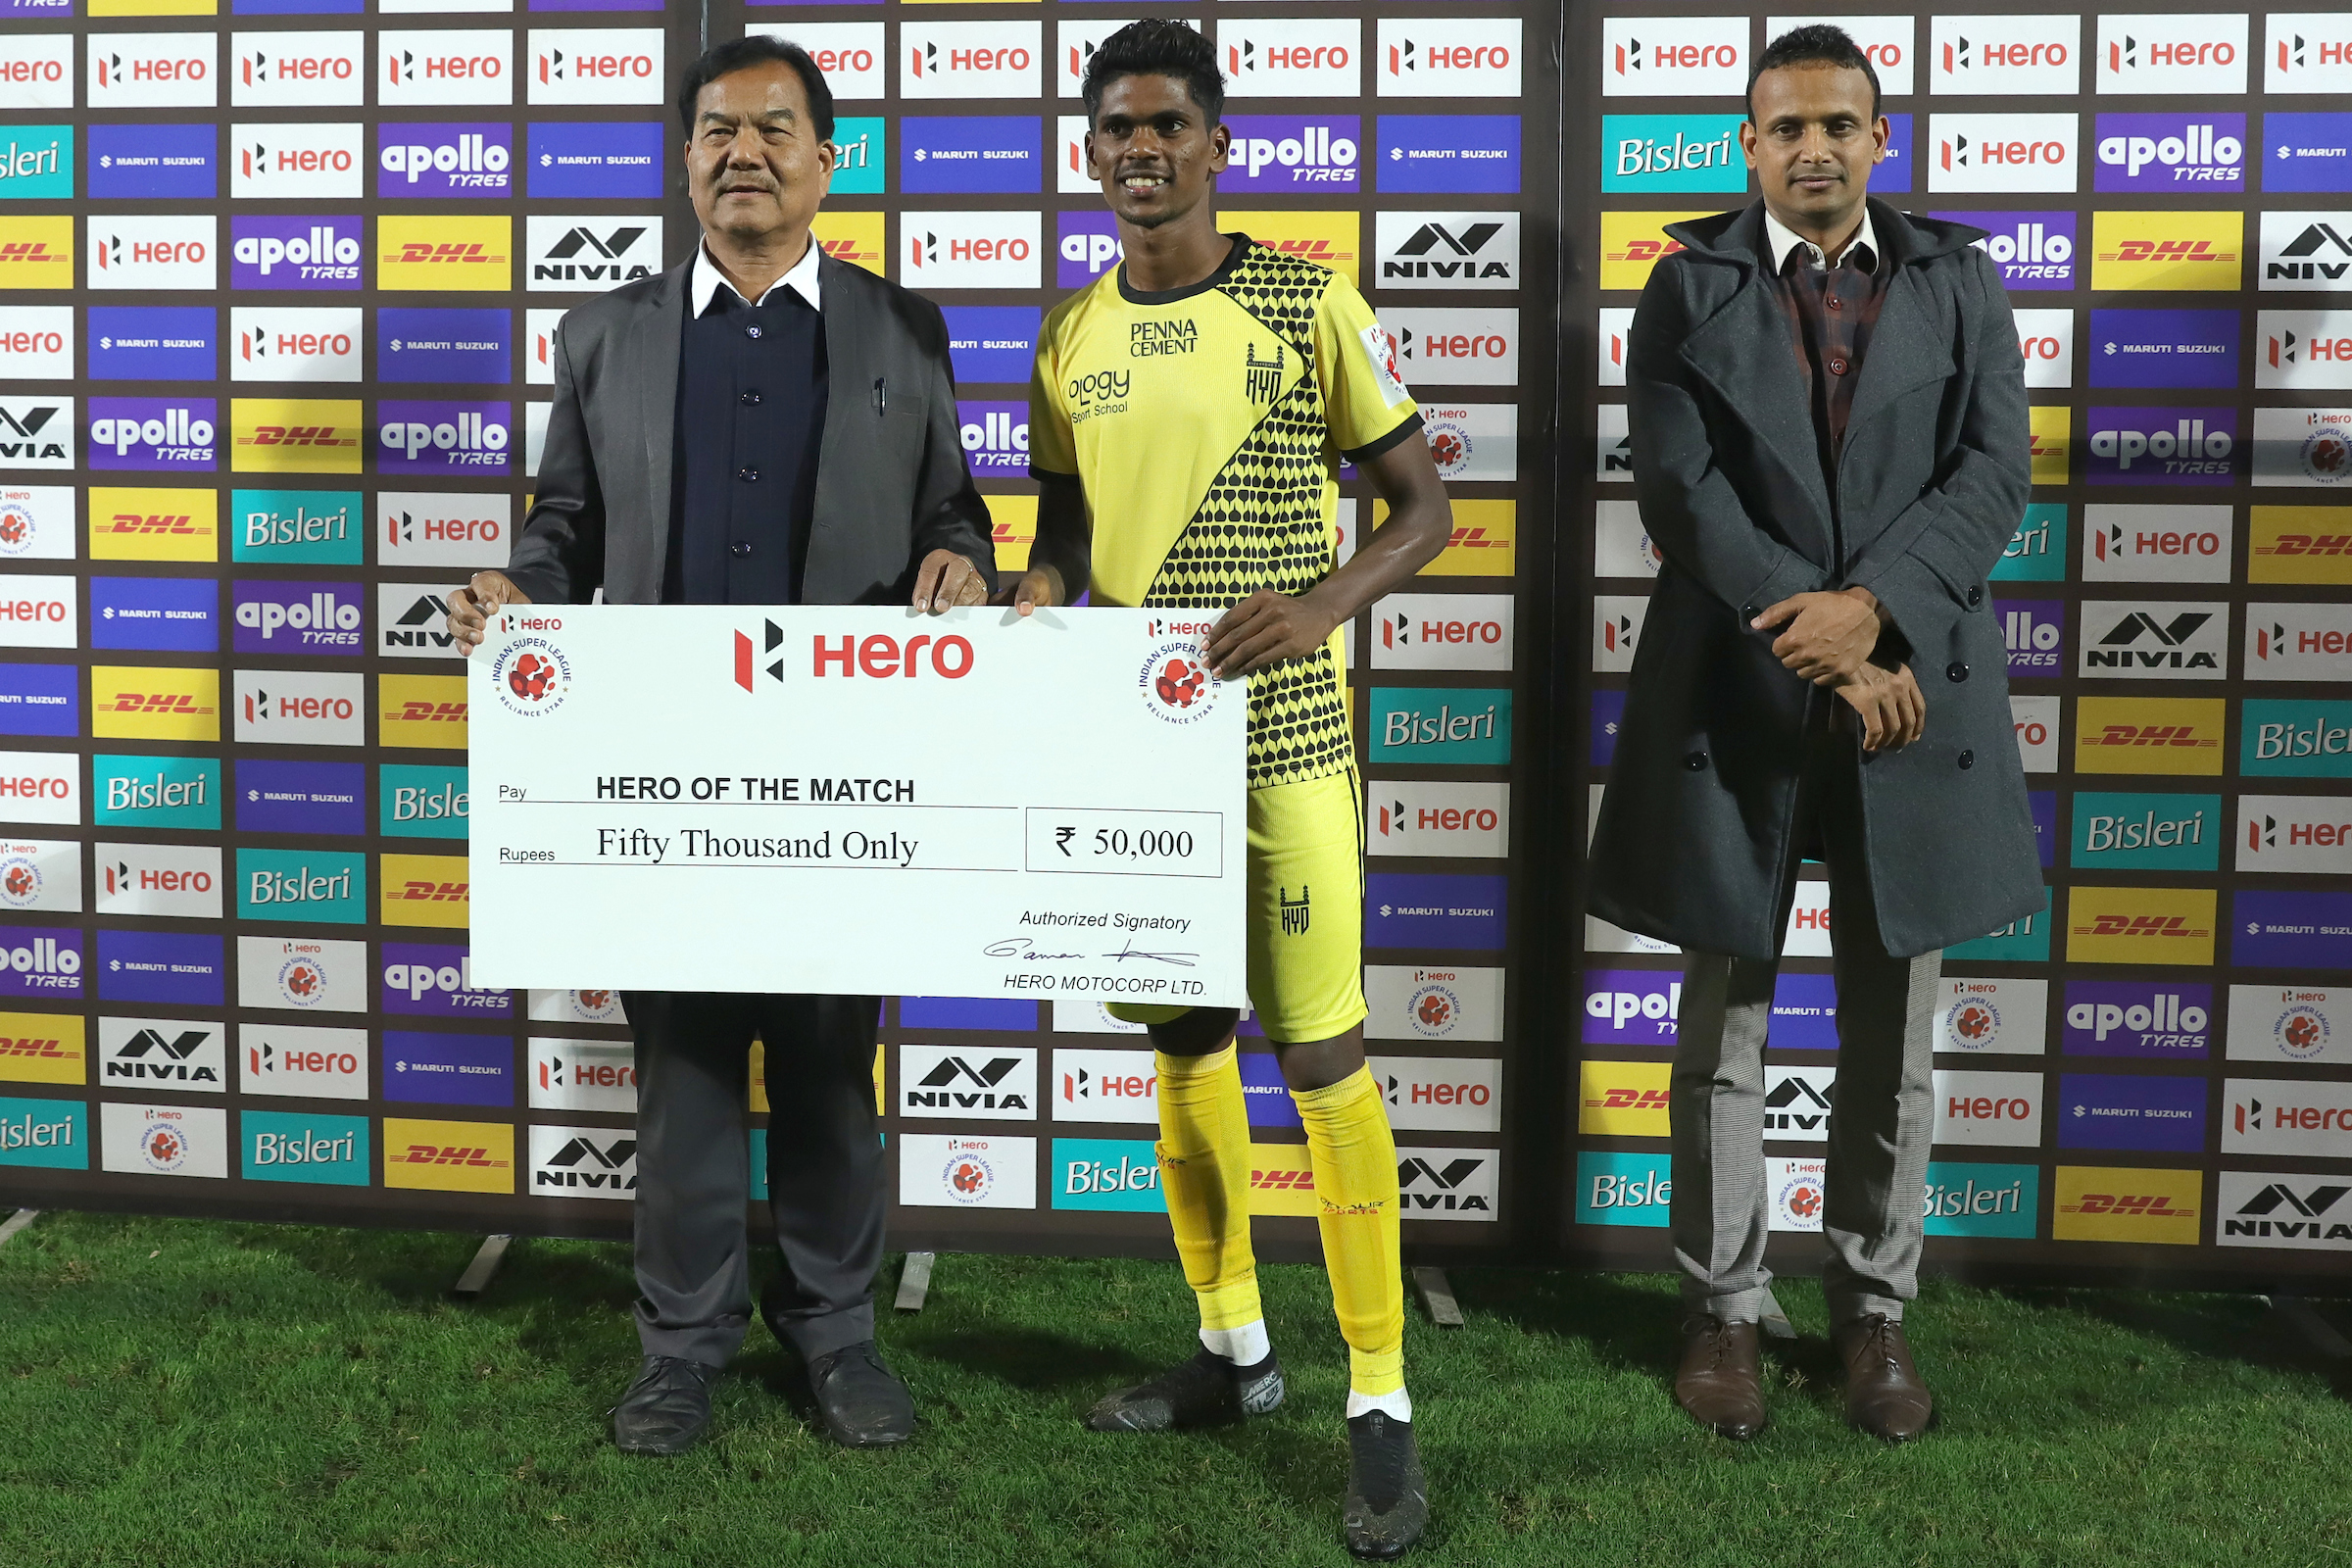 ISL: Hyderabad FC's Liston Colaco aims to play more games as he looks to make a mark